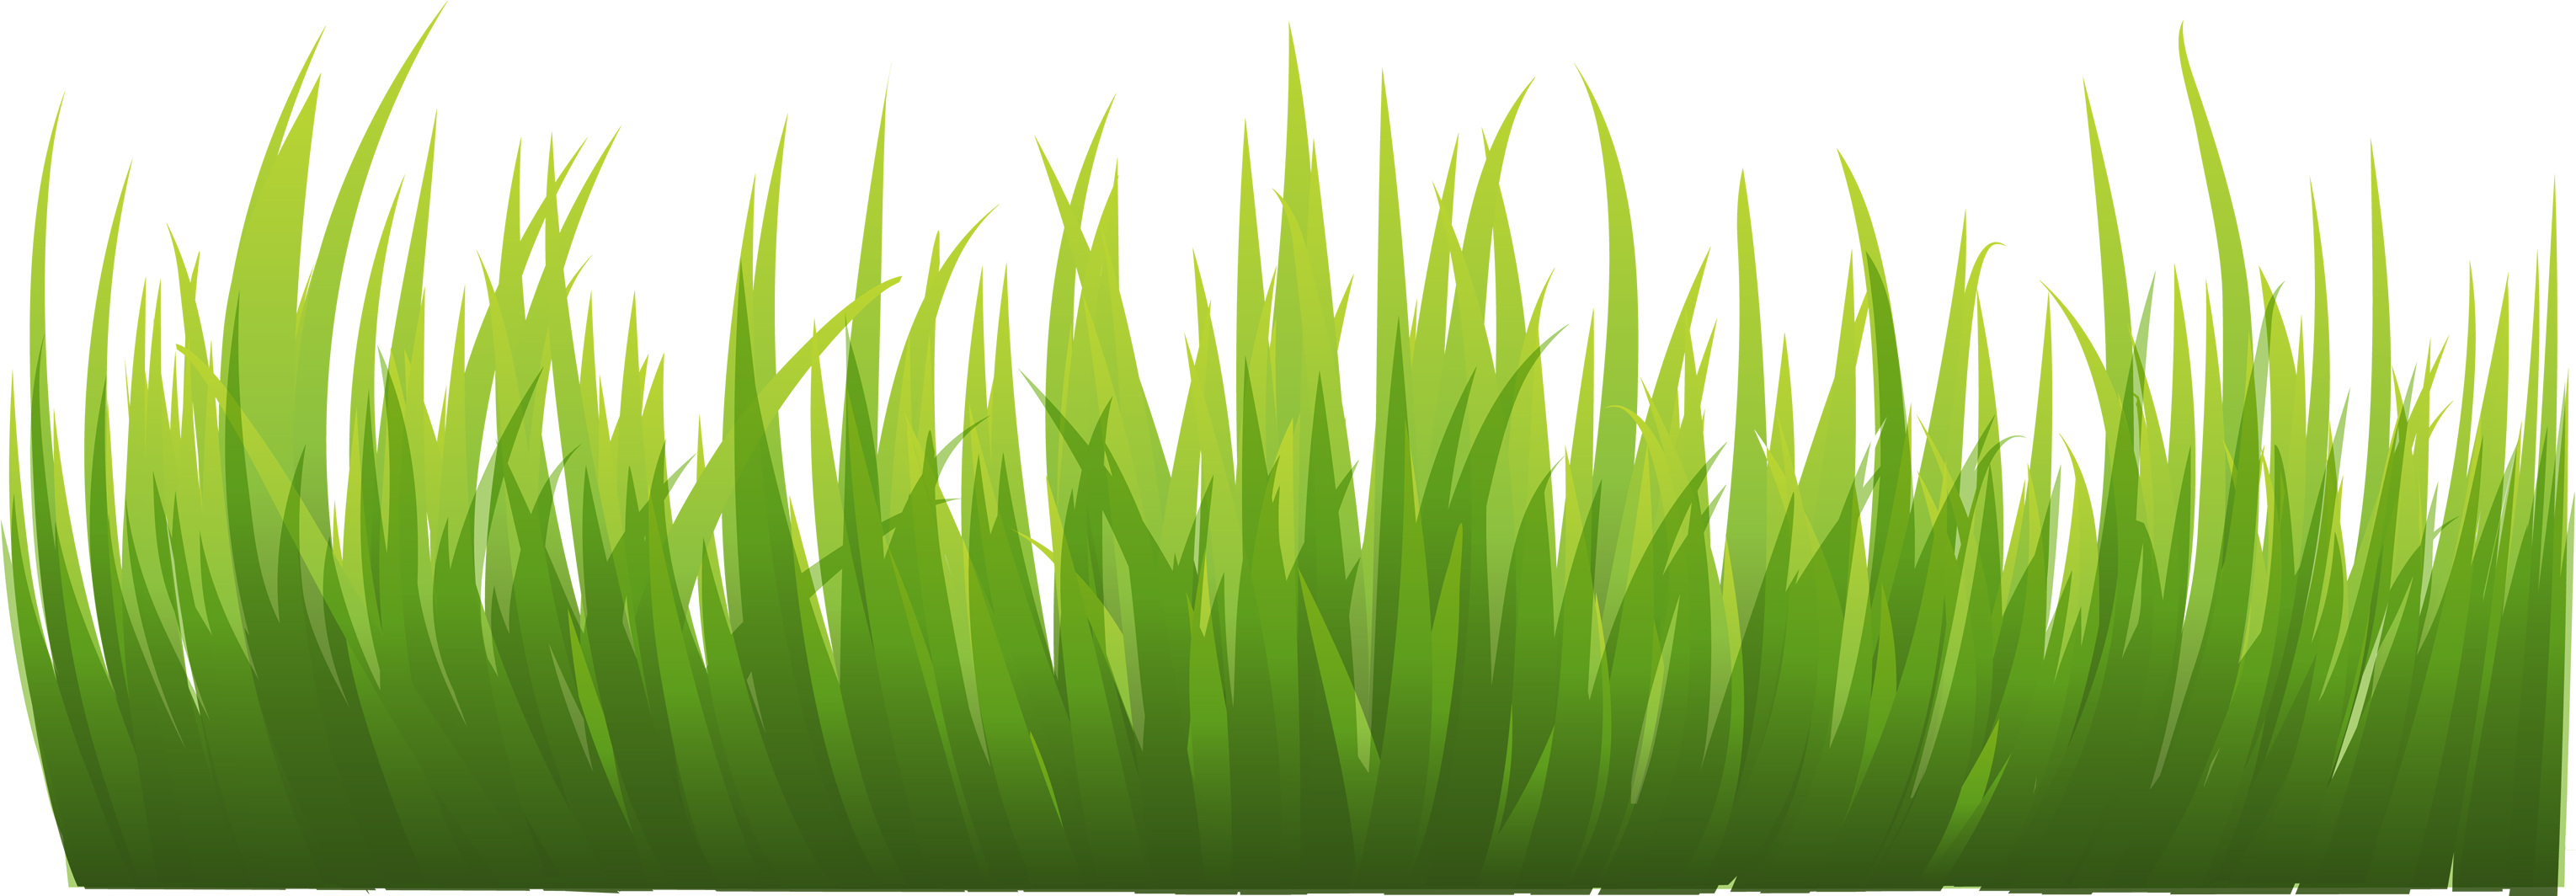 Grass Clip Art : Grass png images pictures